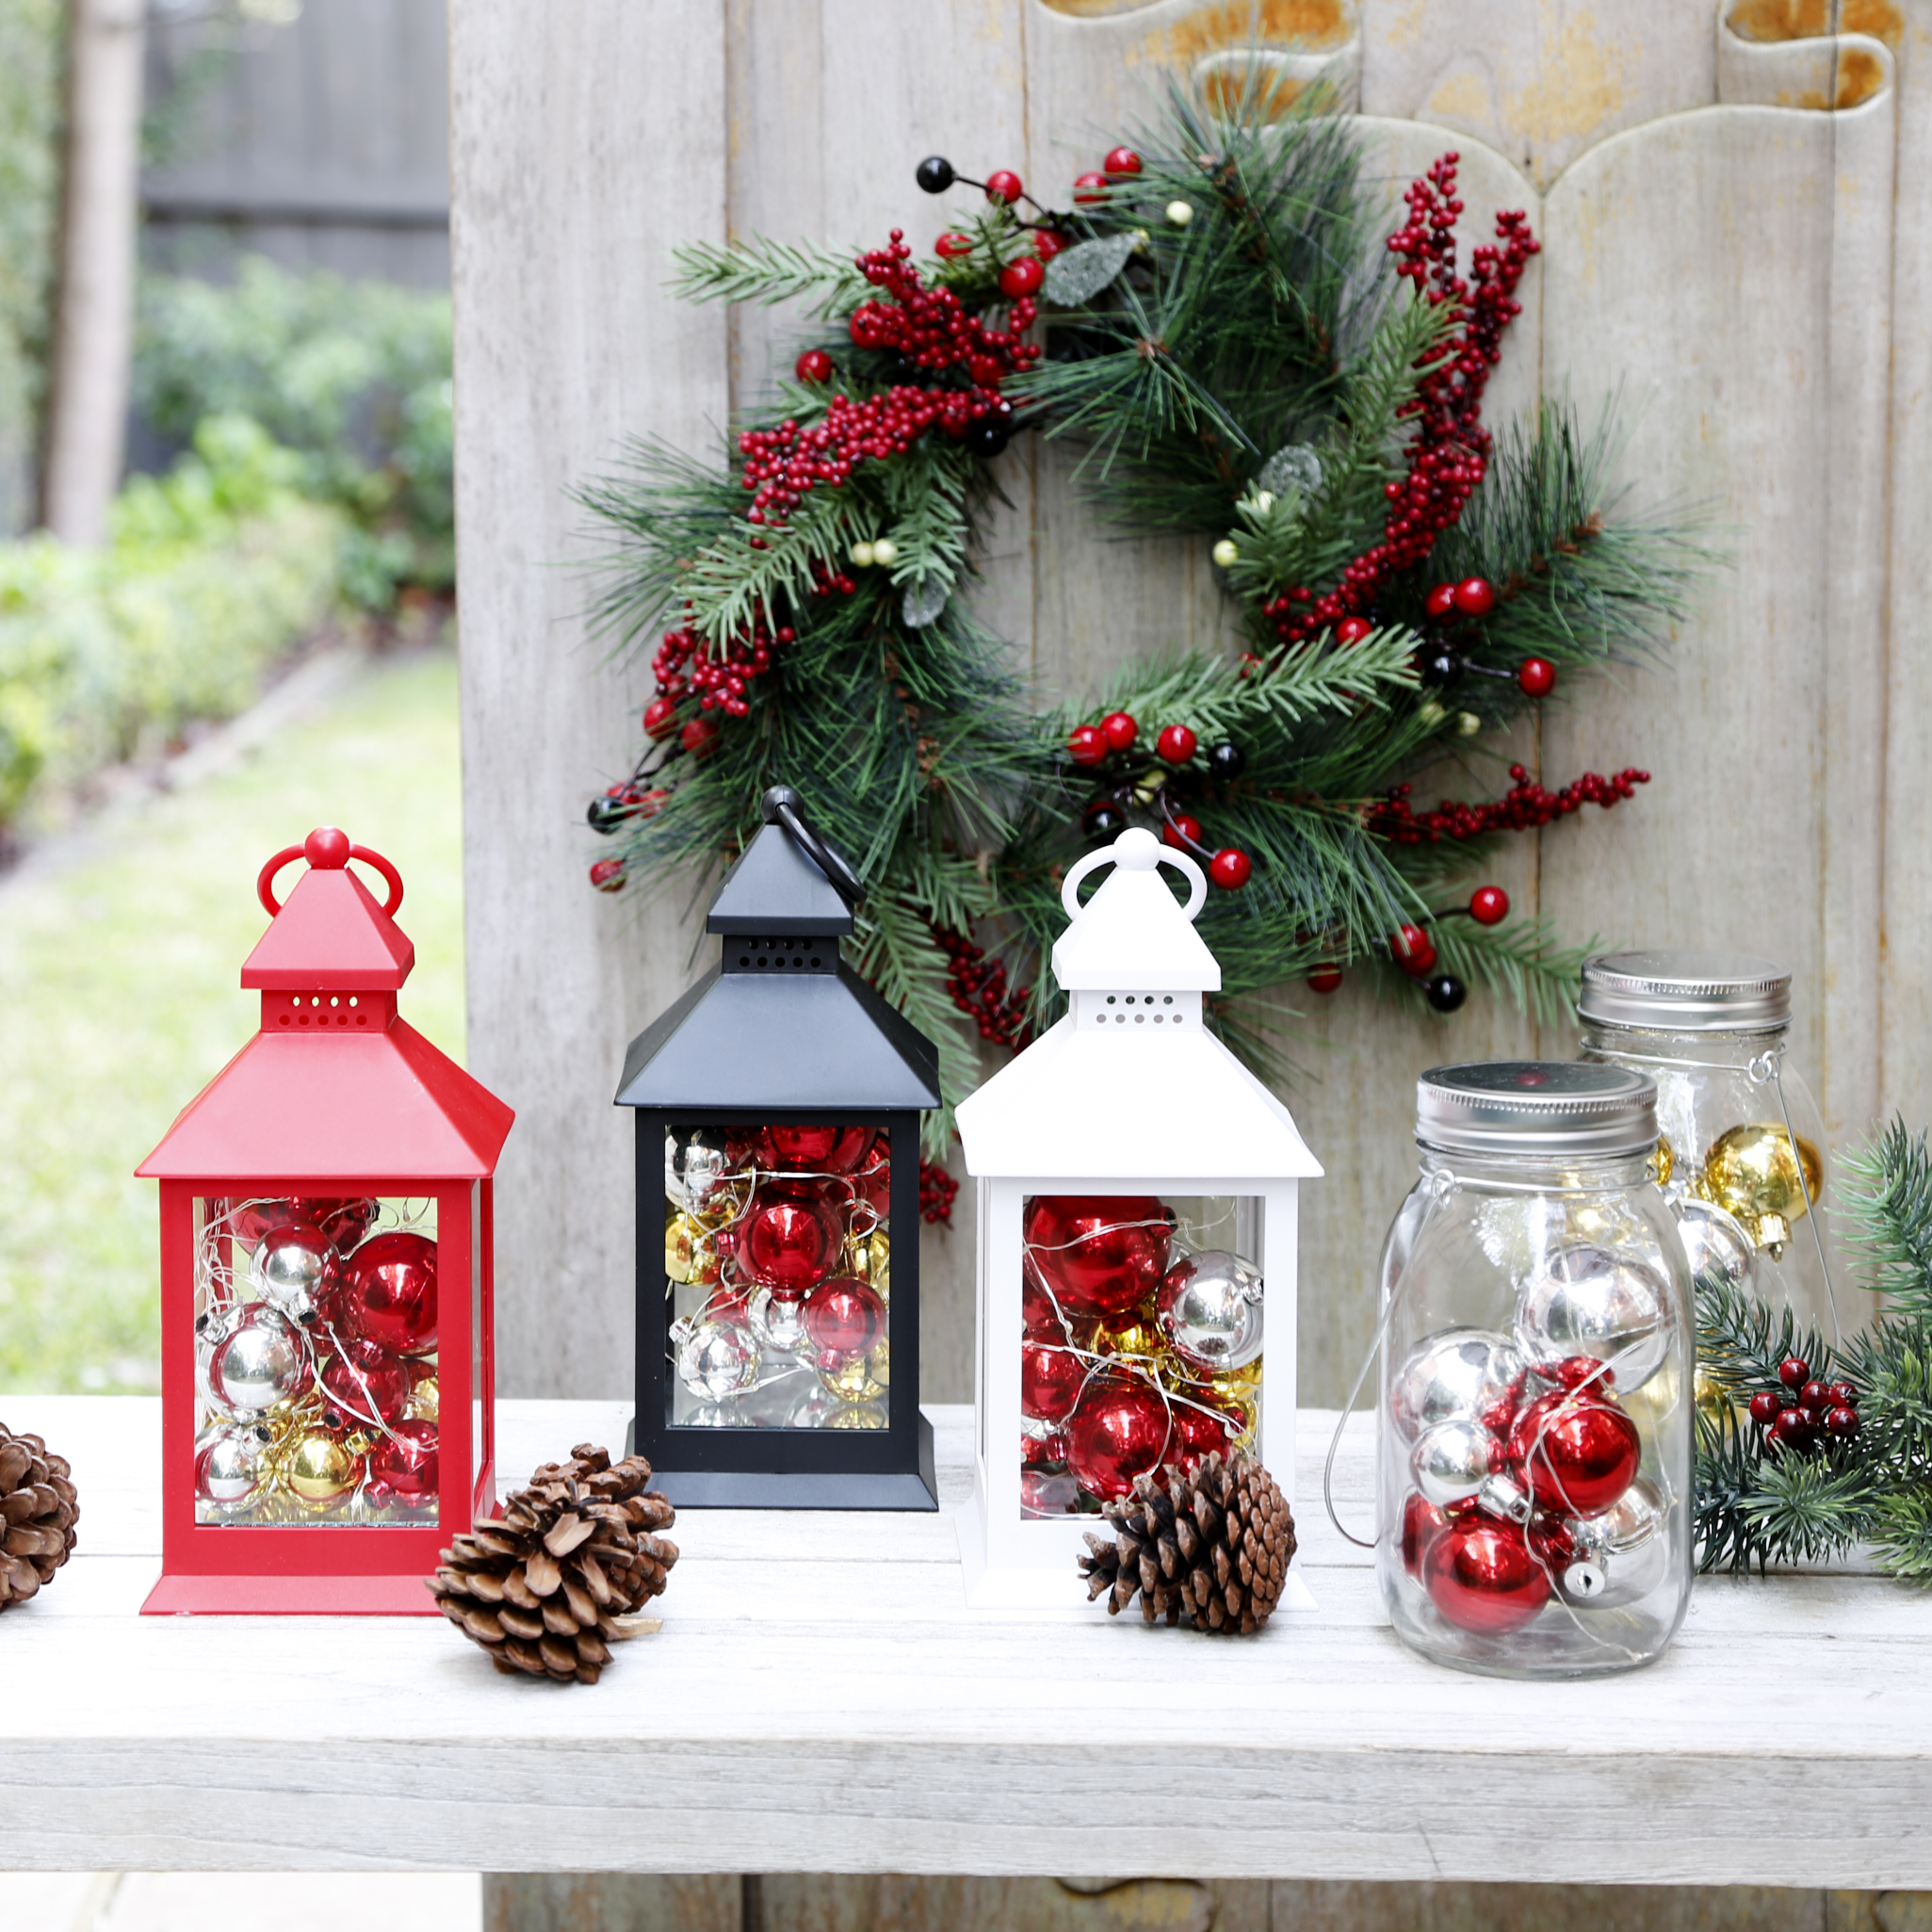 Put Some Christmas Decorations In Jars Or Lanterns To Make